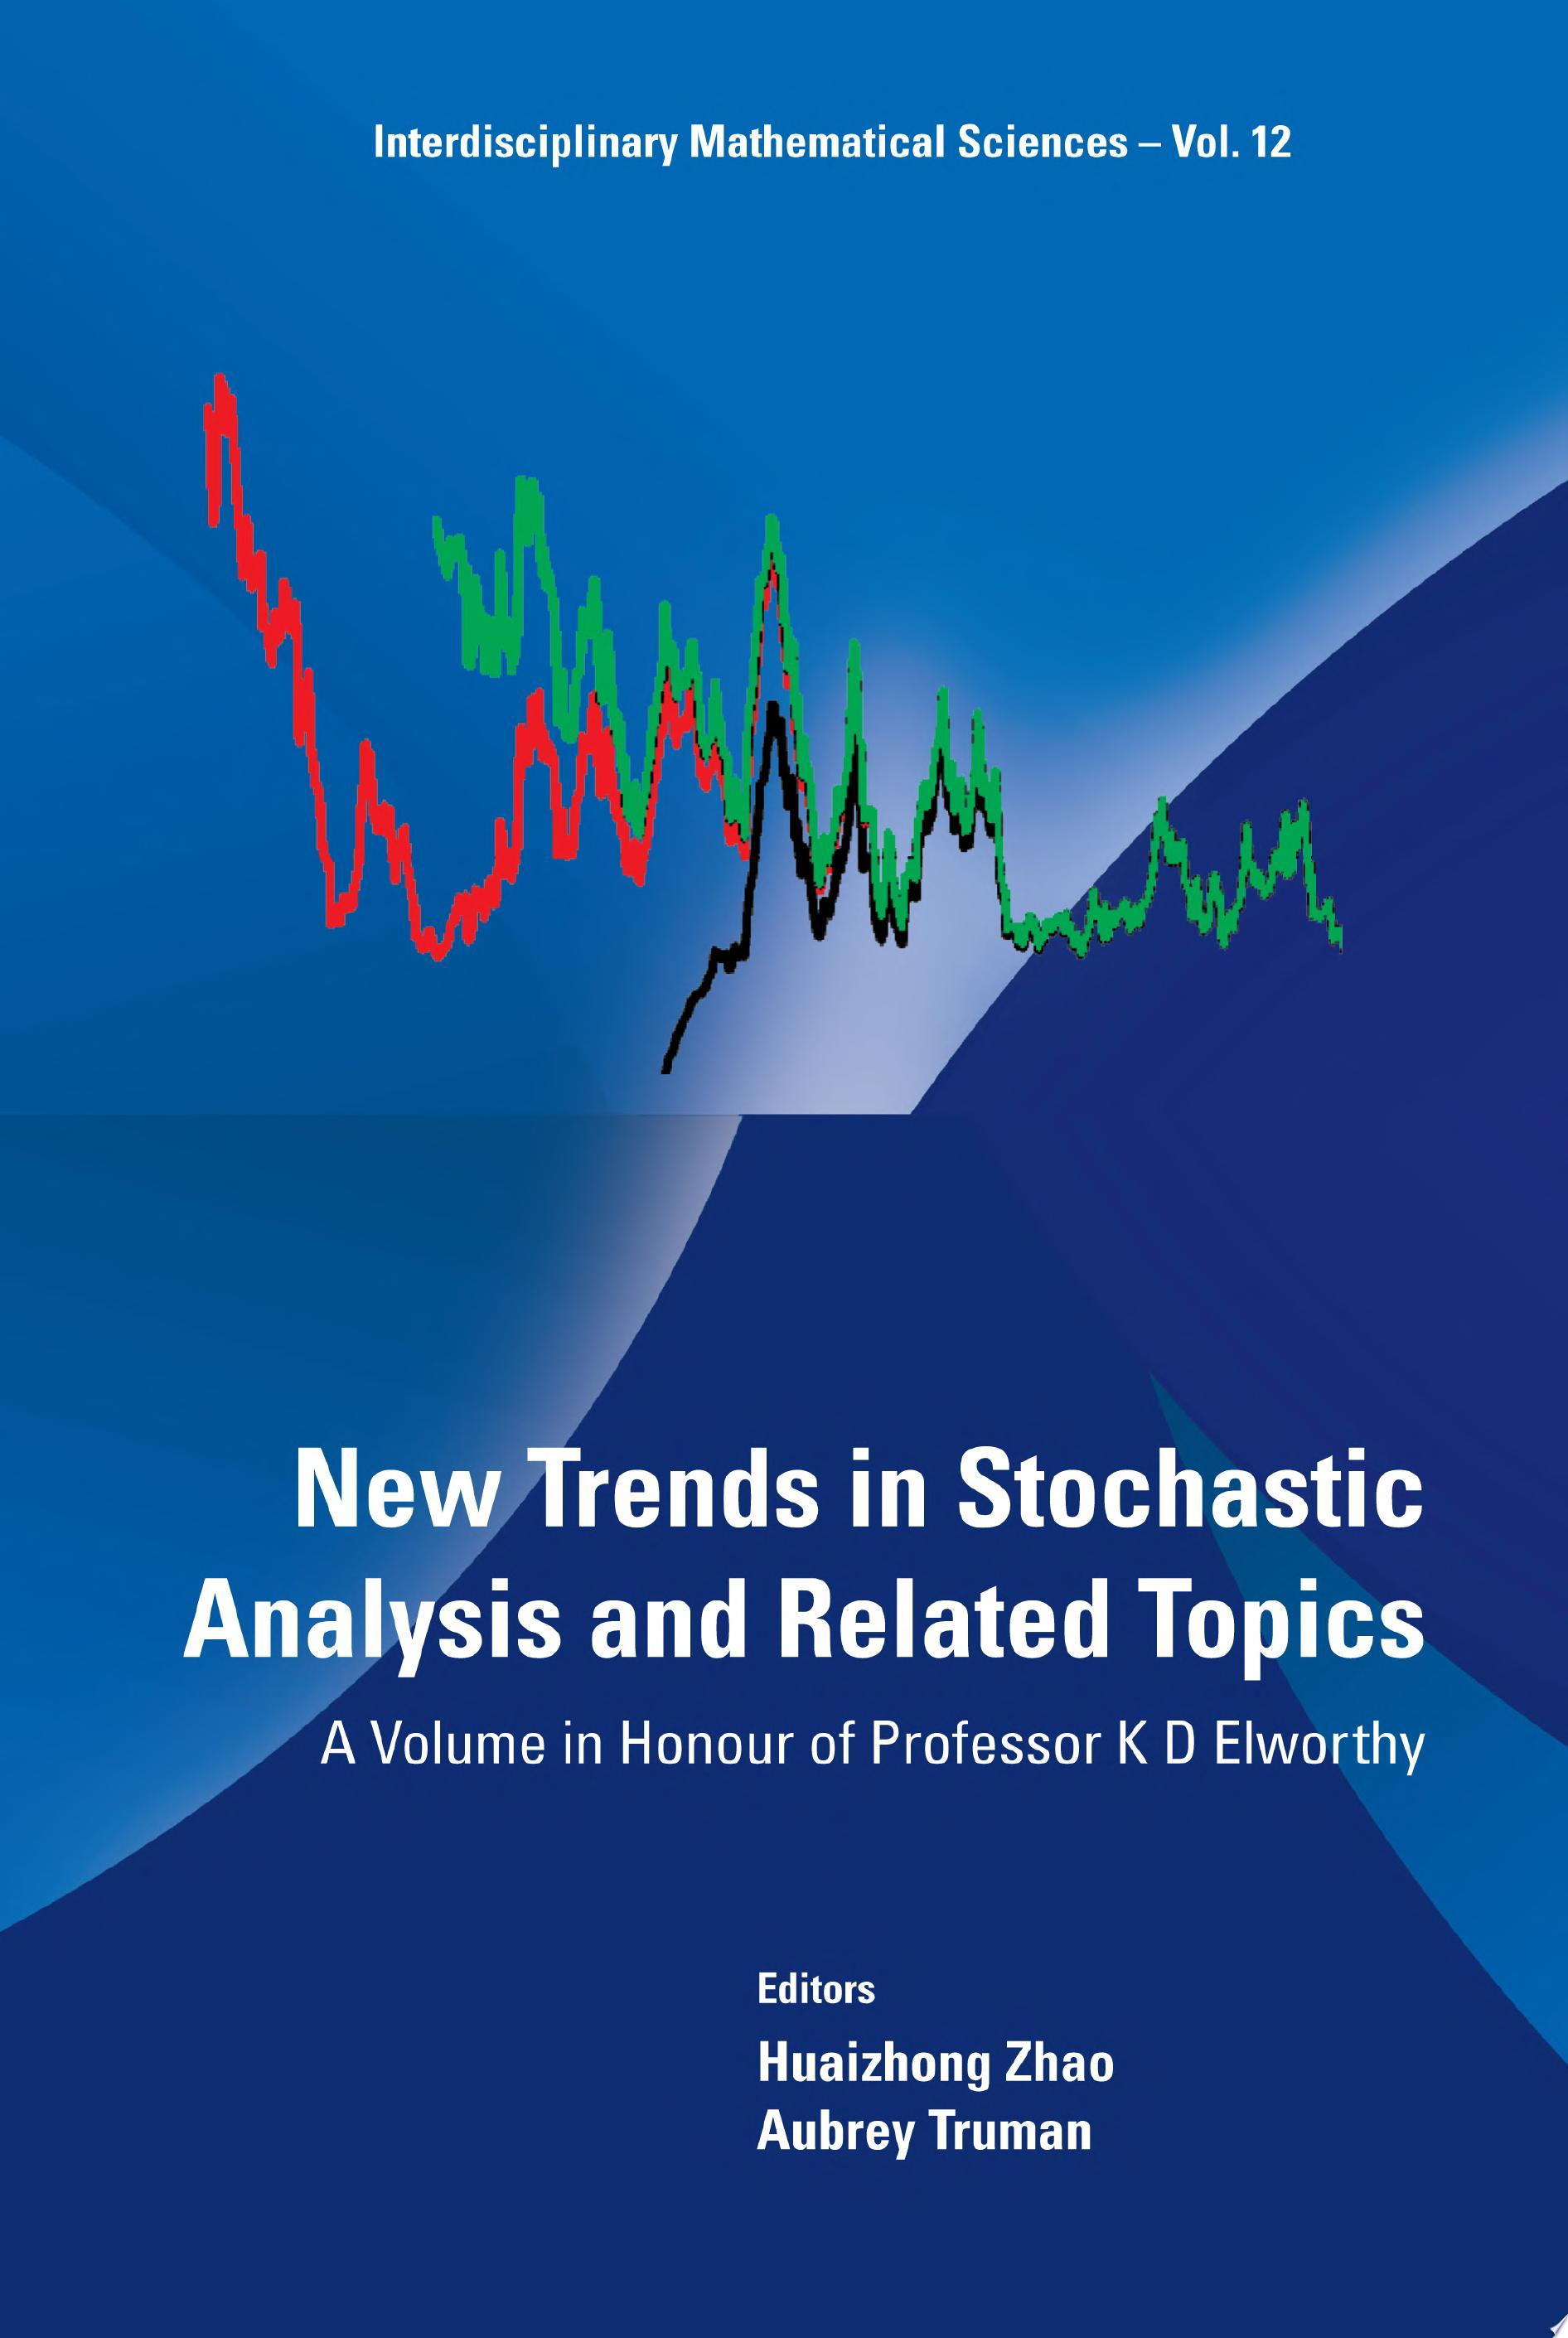 New Trends in Stochastic Analysis and Related Topics